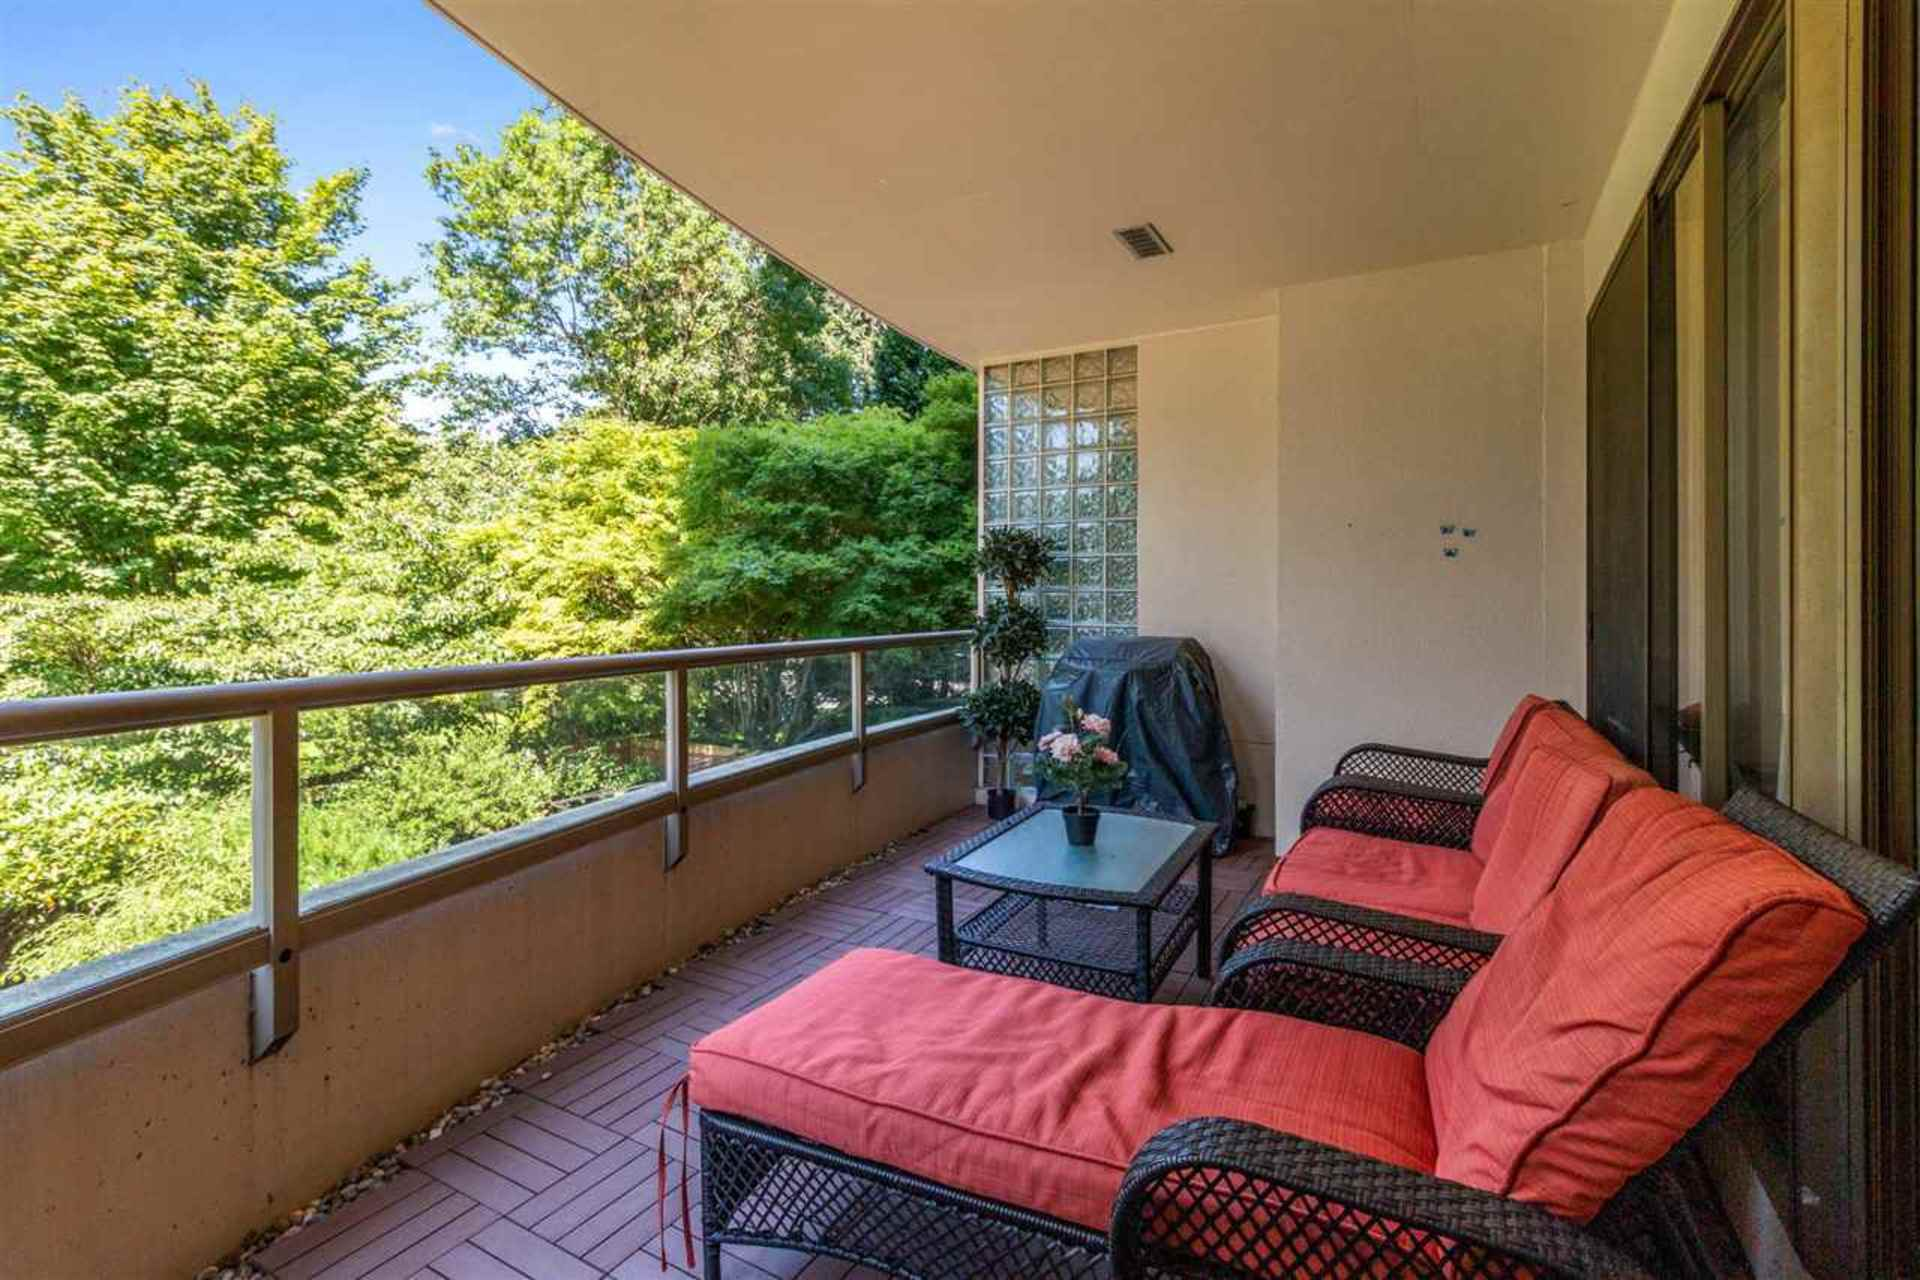 5885-olive-avenue-metrotown-burnaby-south-19 at 201 - 5885 Olive Avenue, Metrotown, Burnaby South